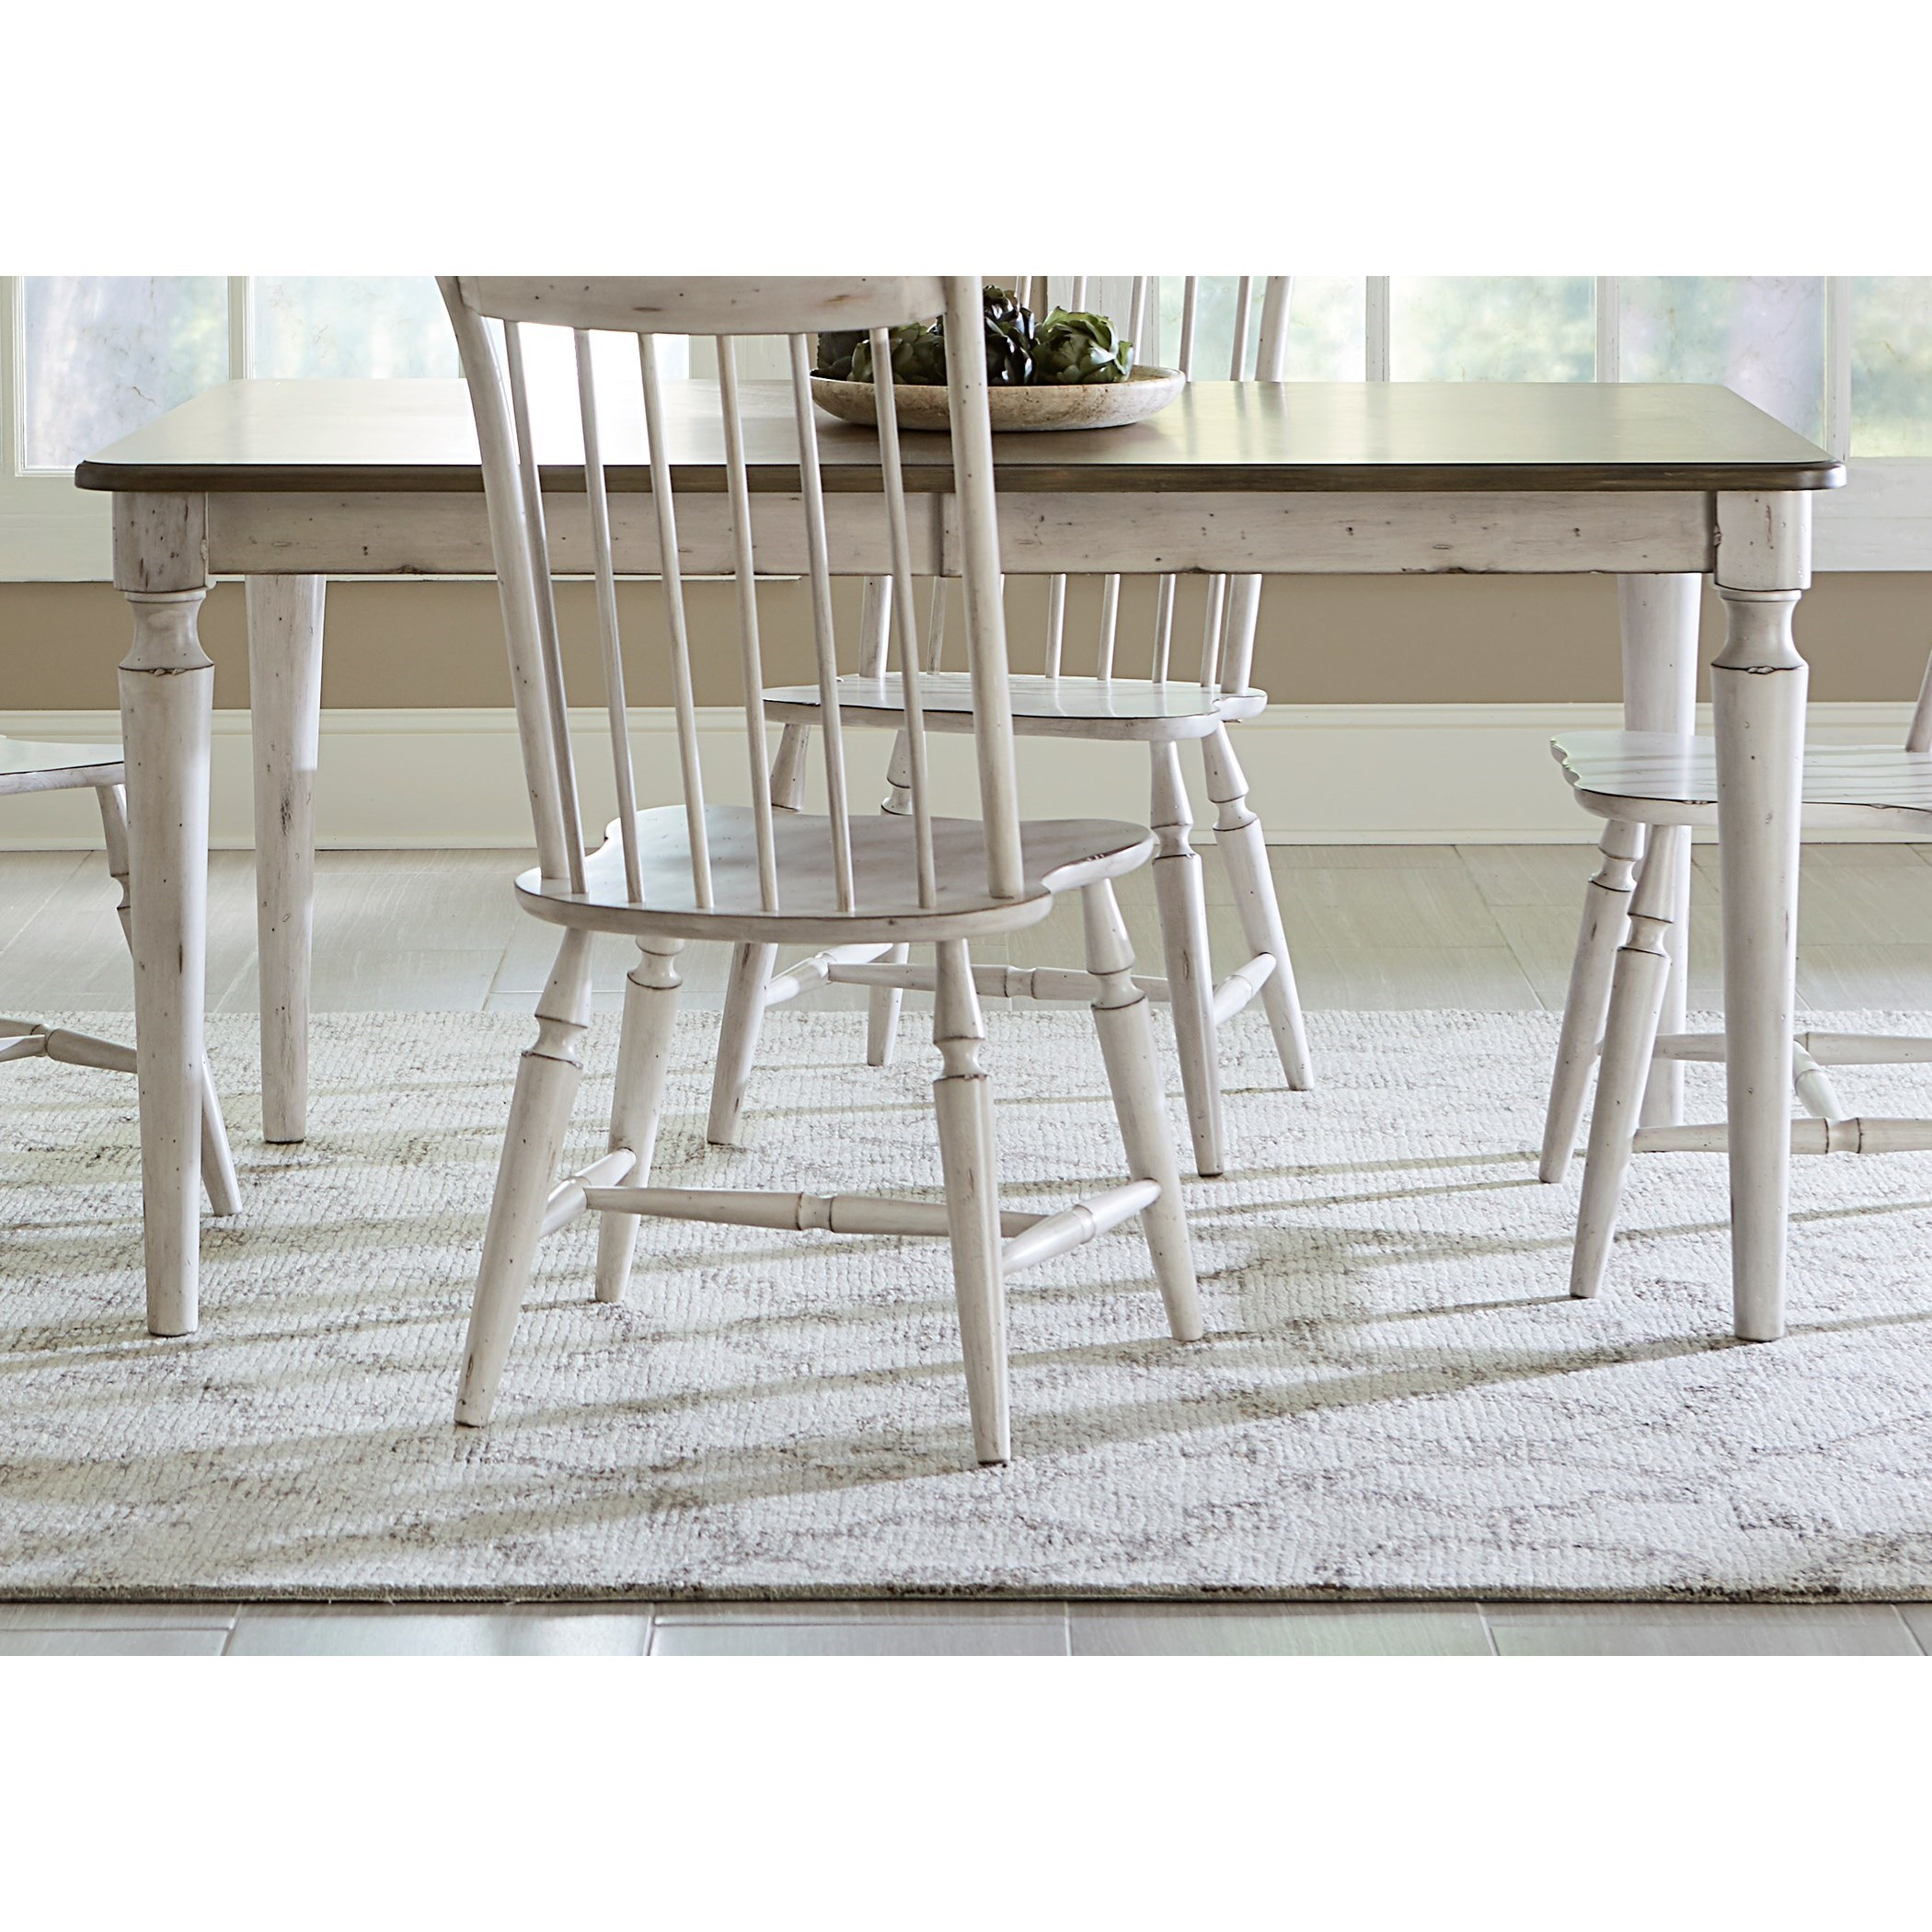 Liberty Furniture Oak Hill Dining Rectangular Leg Table With Leaf    Miskelly Furniture   Dining Room Table